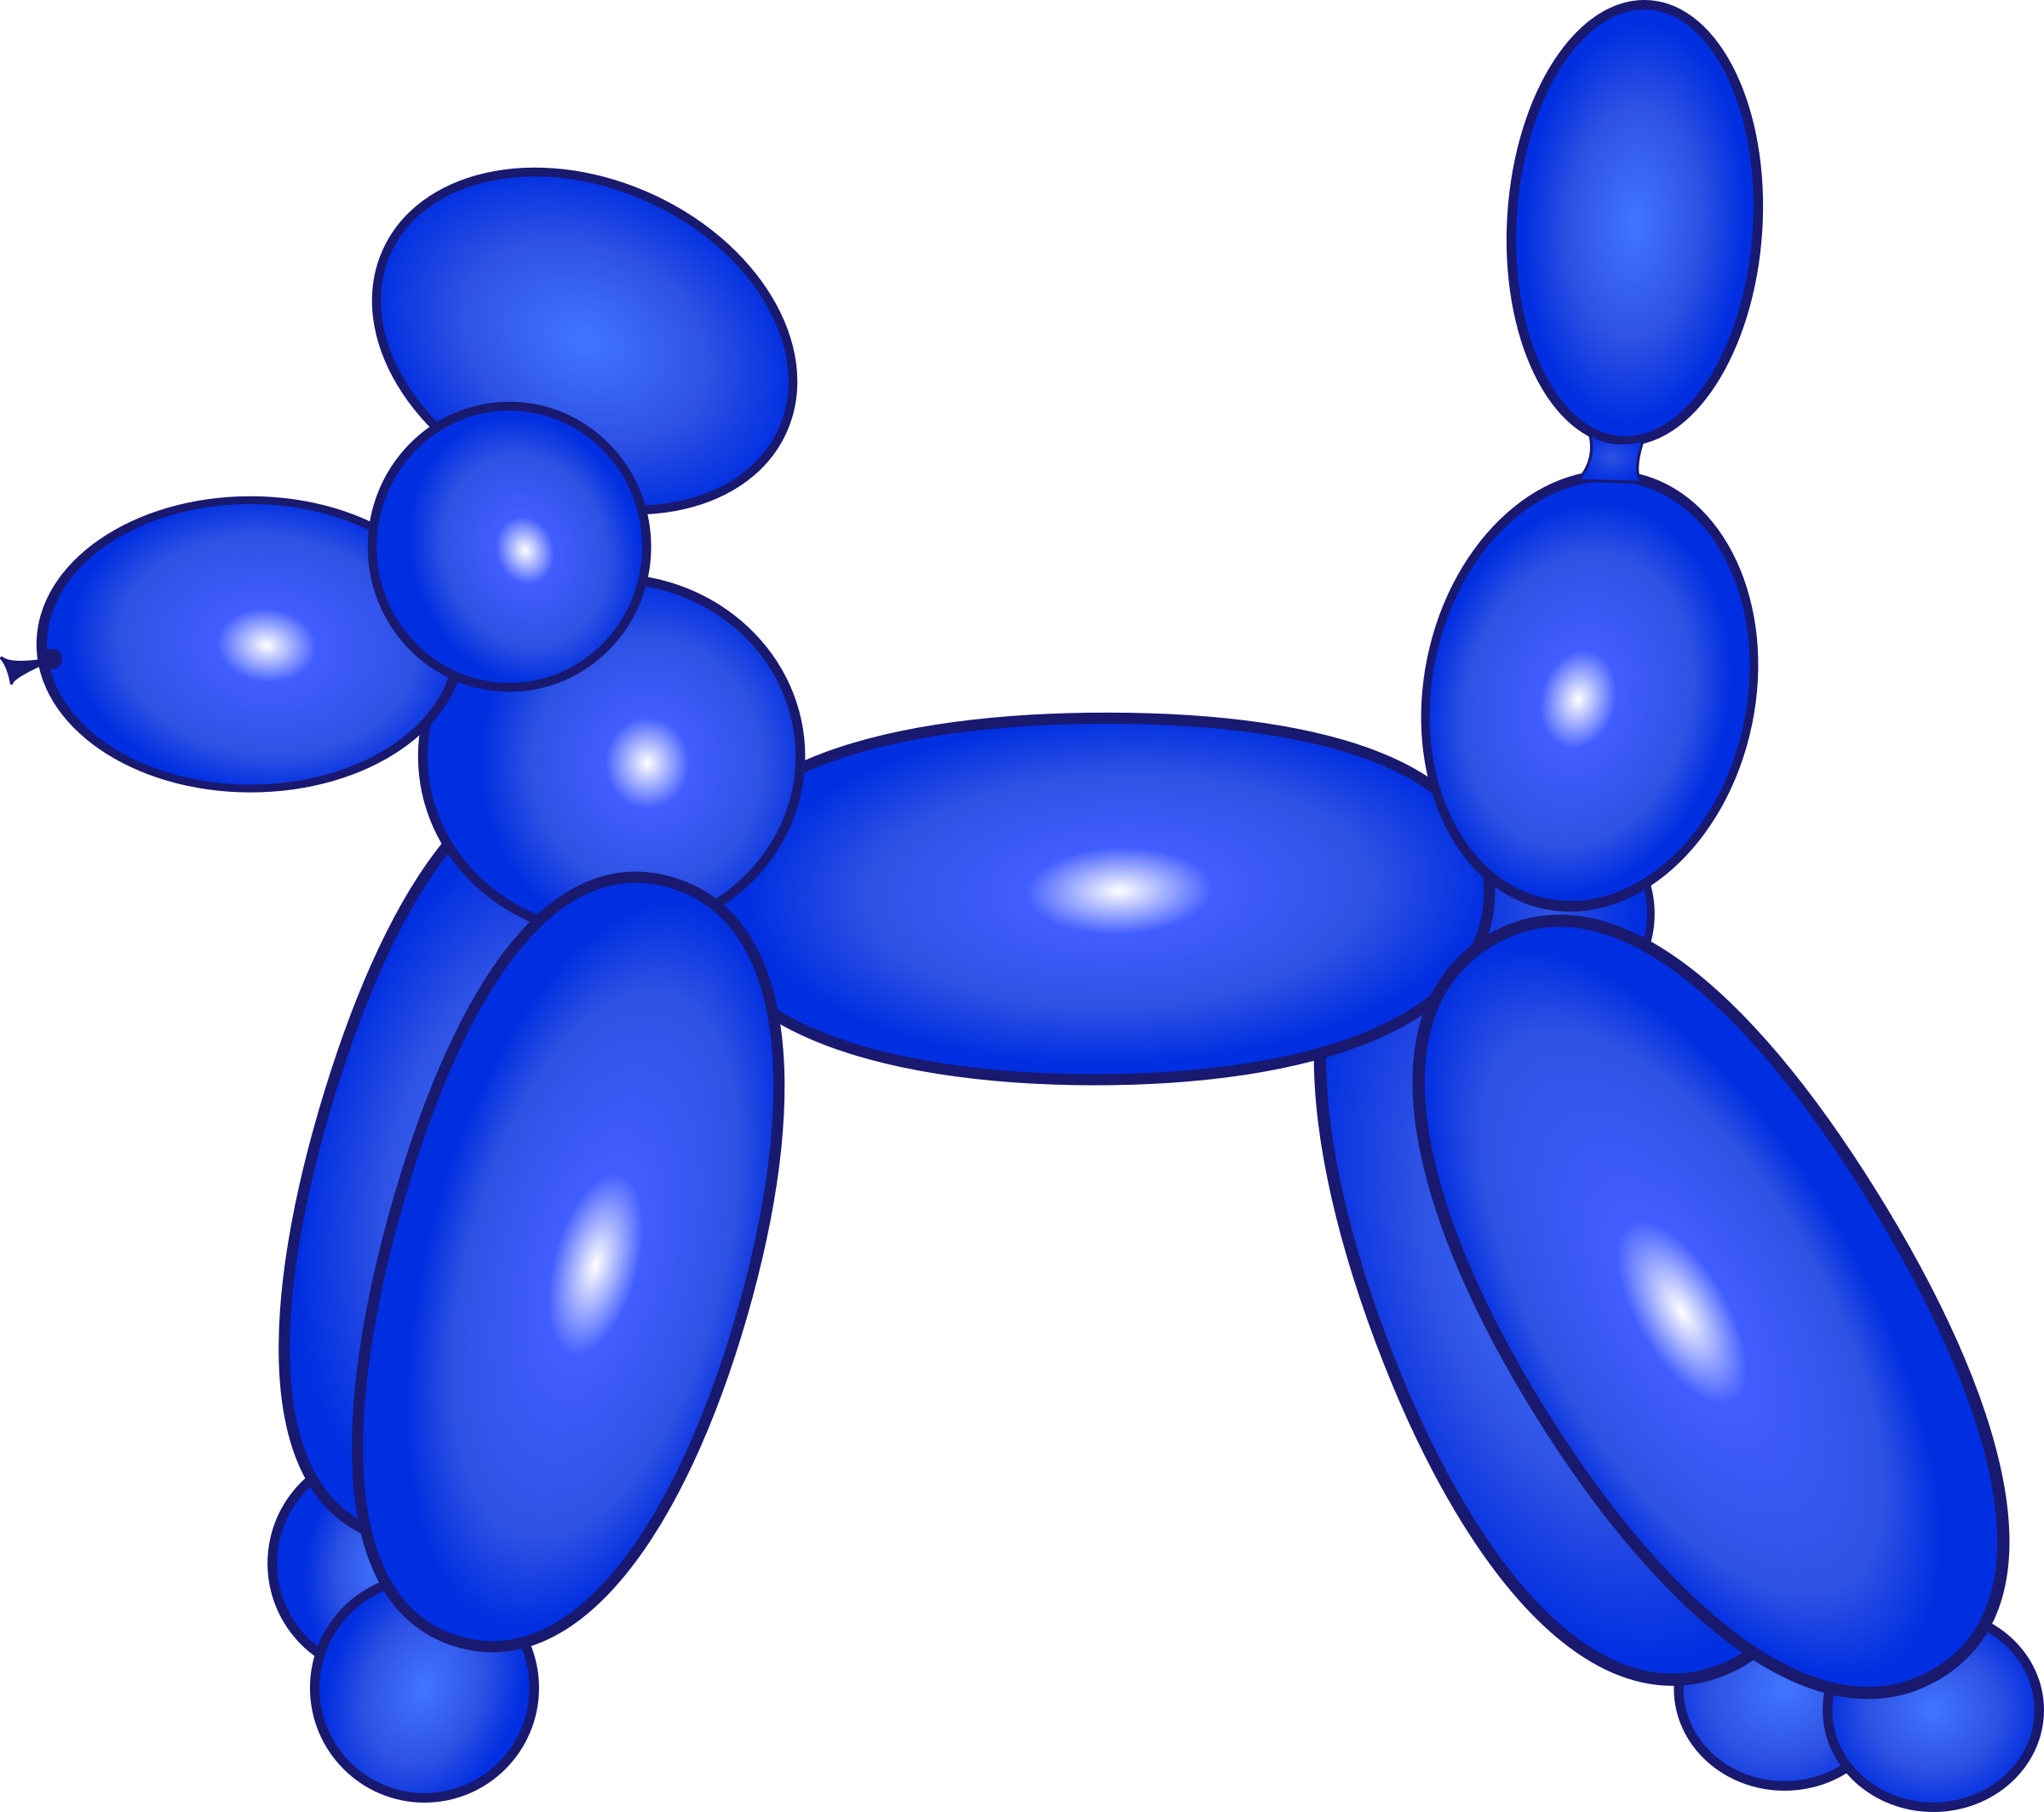 Dog blue big image. Clipart balloon shape